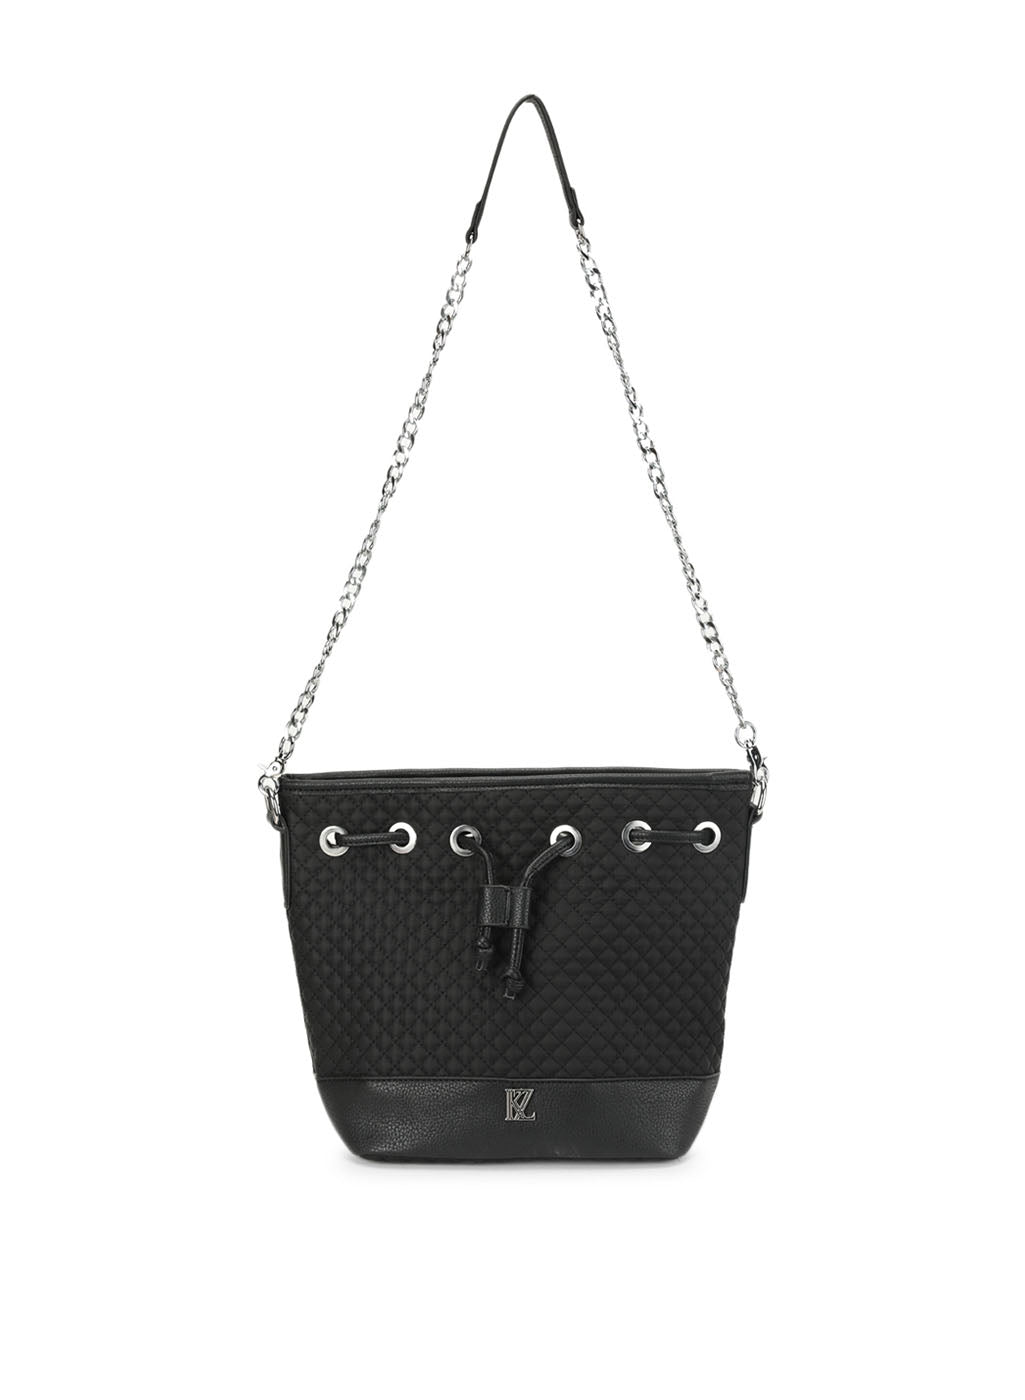 Florence Black Drawstring Sling Bag